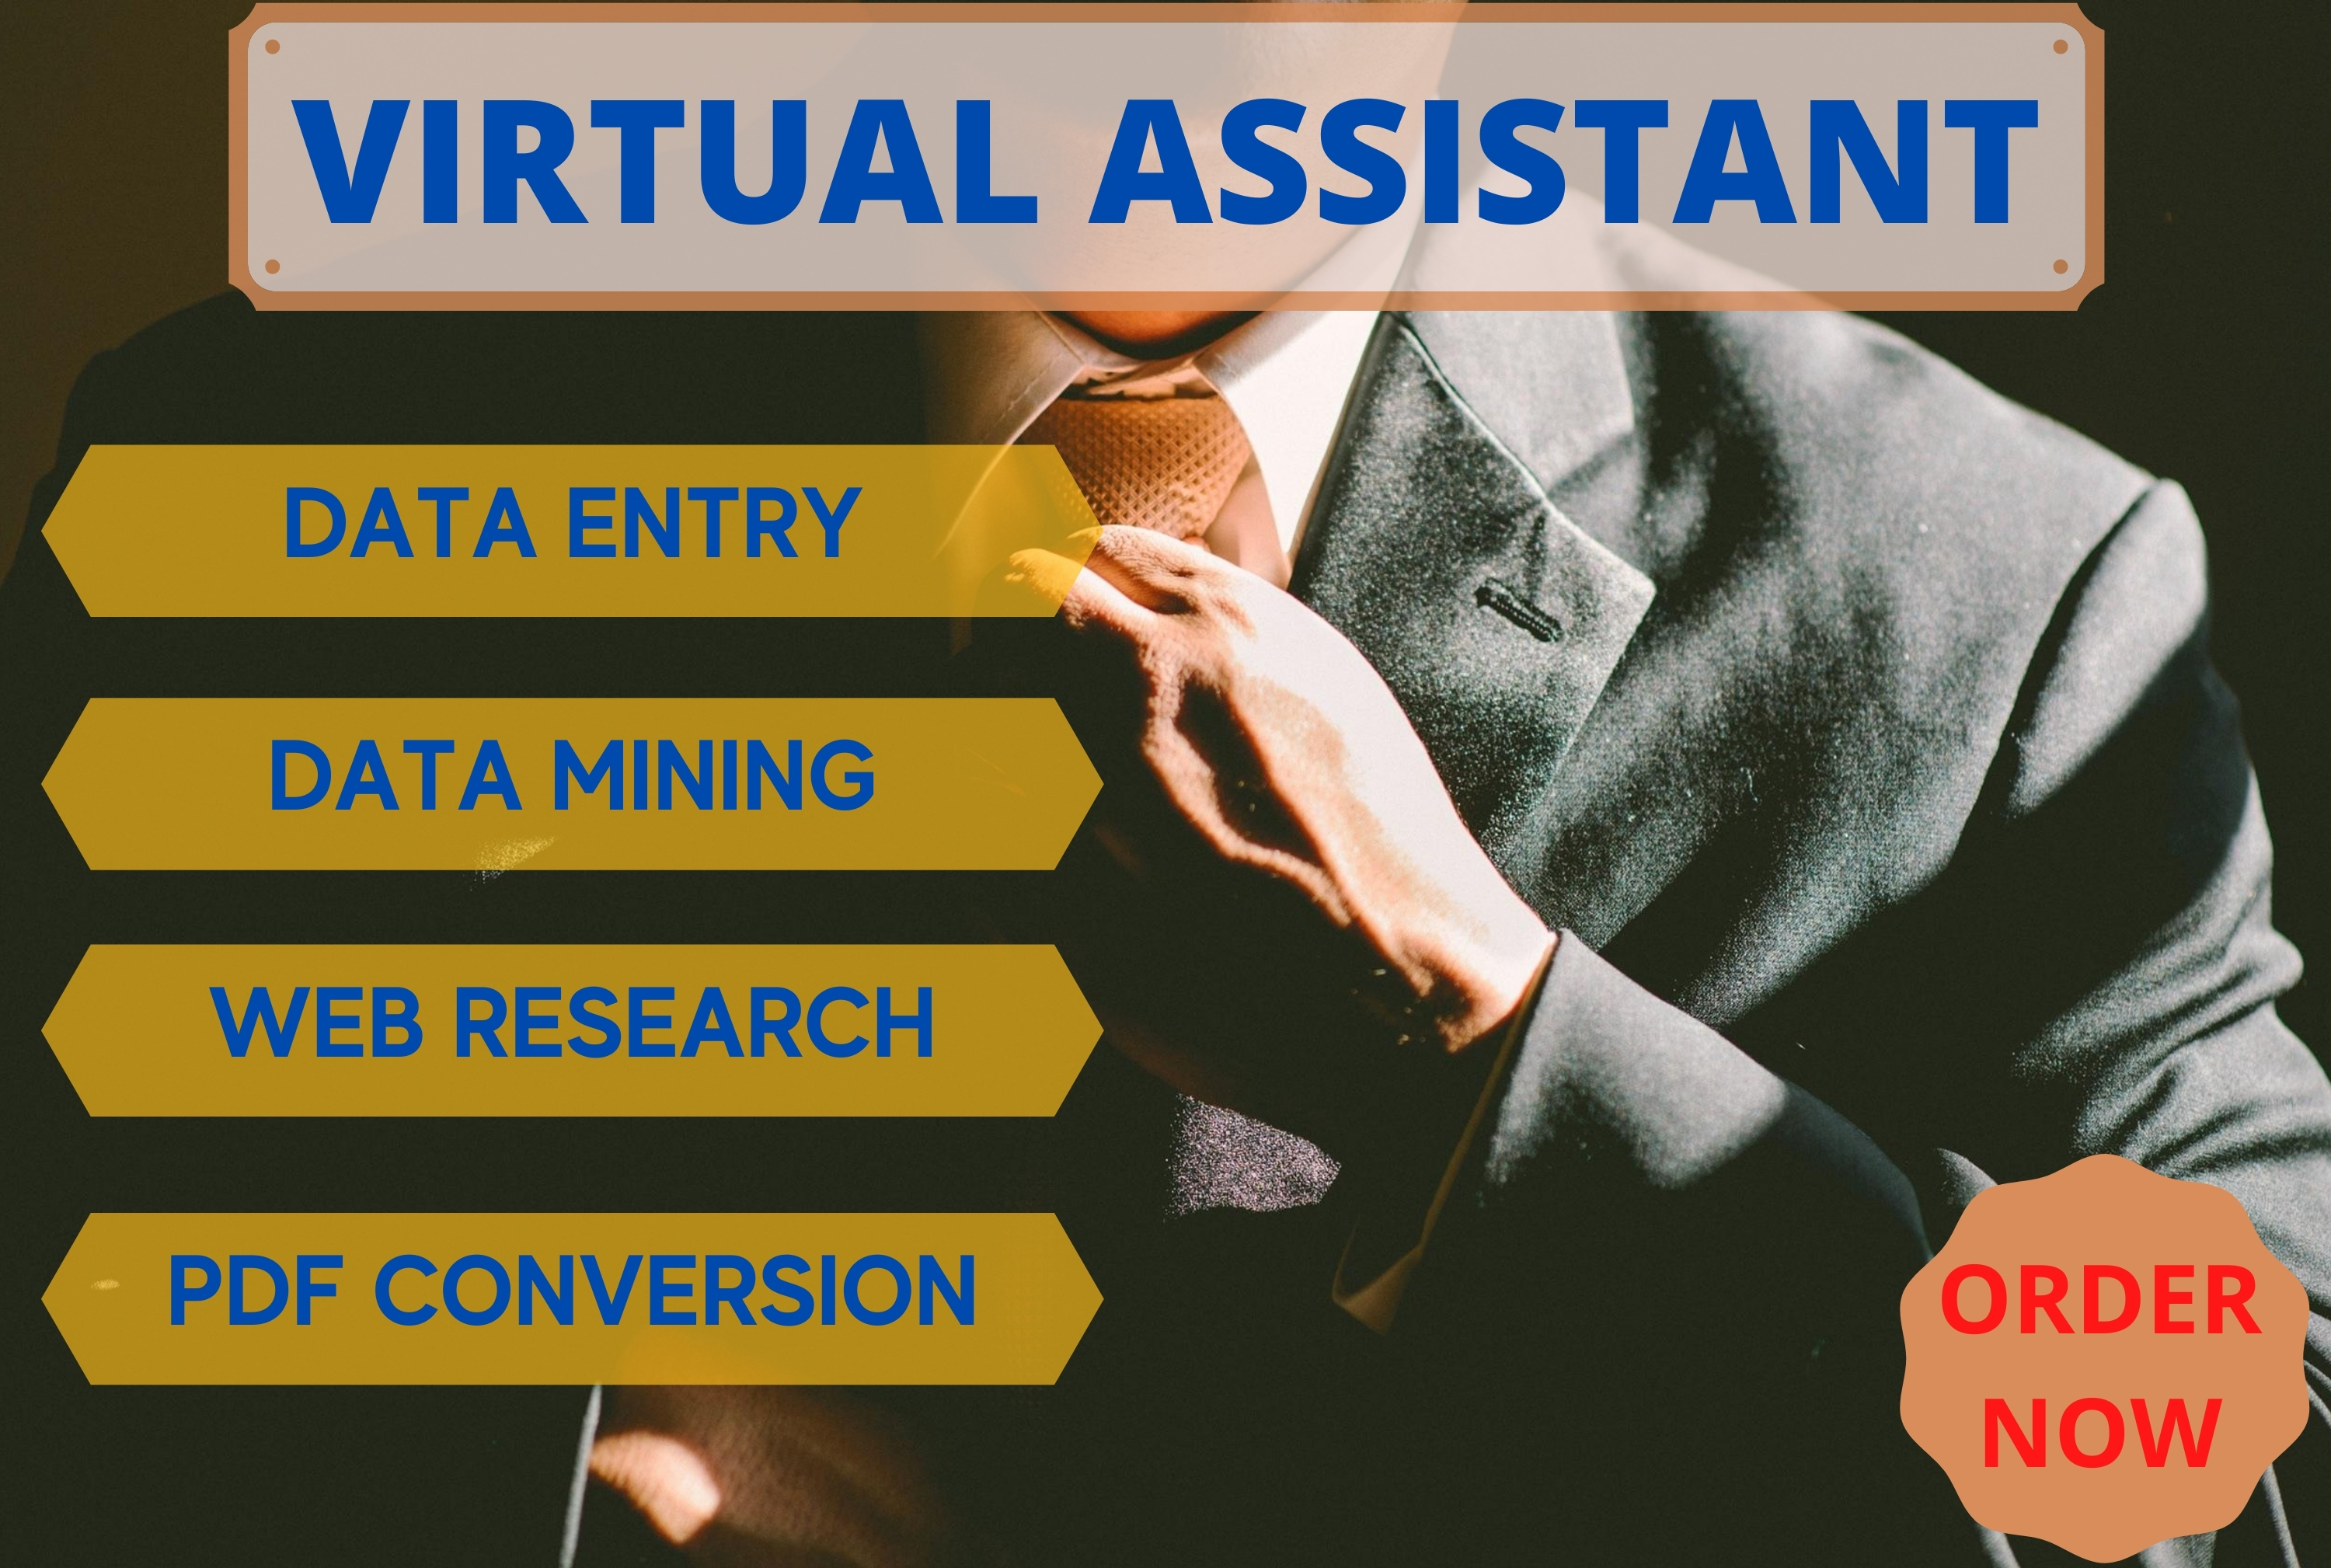 I will be your professional virtual assistant for data entry and web research